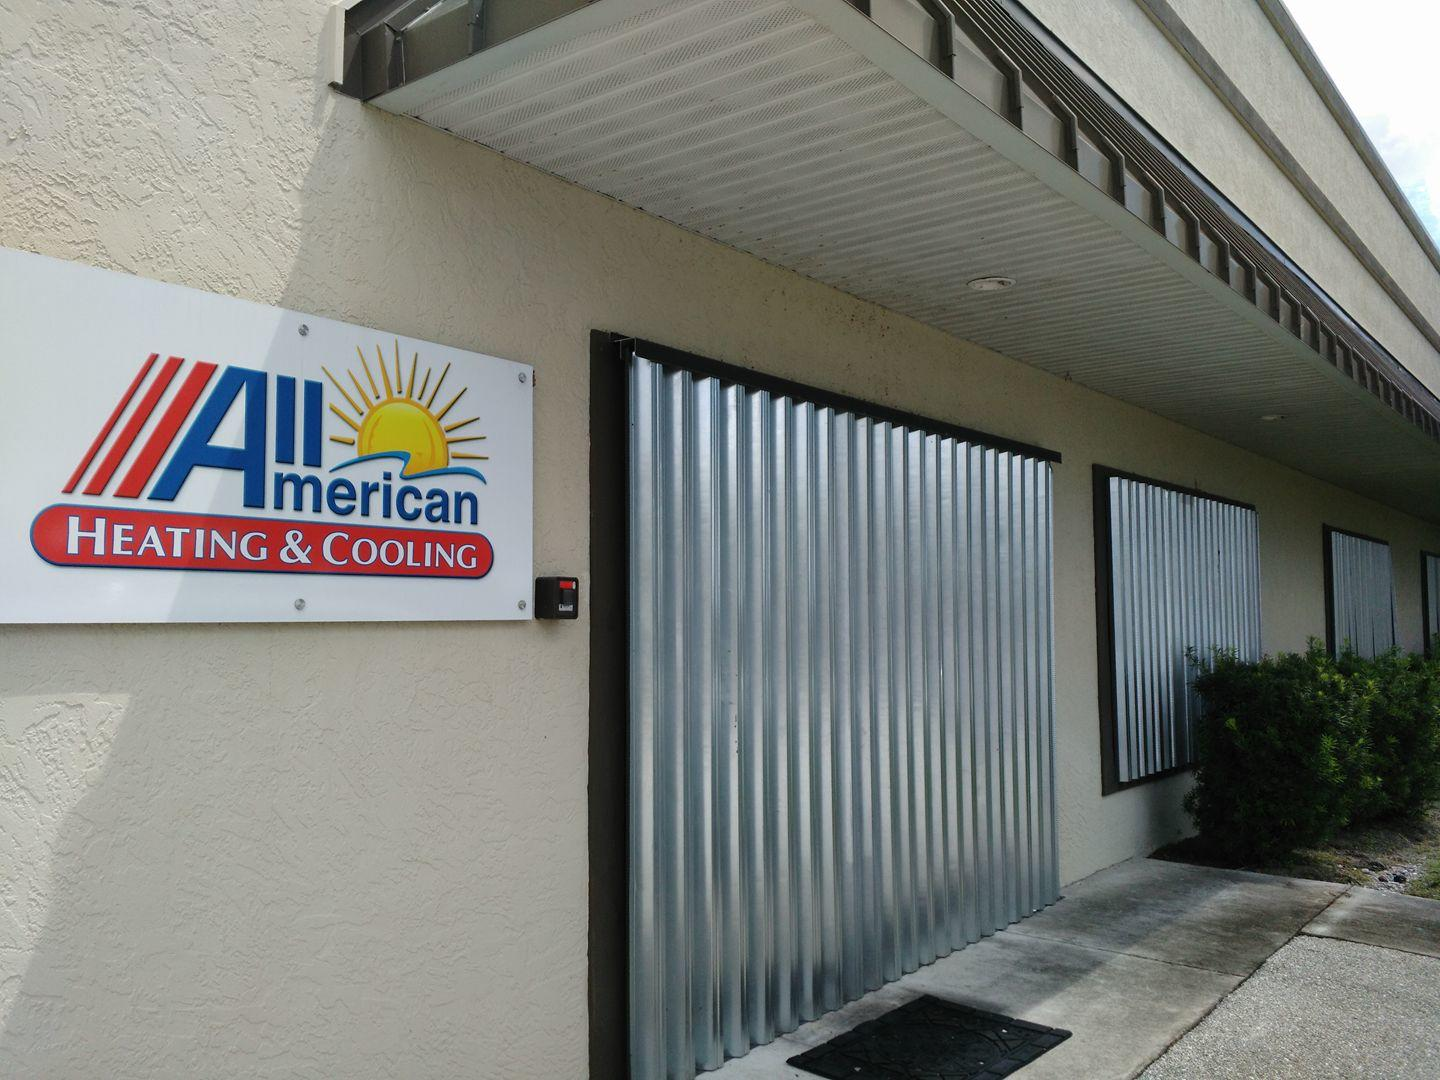 All American Heating & Cooling image 3